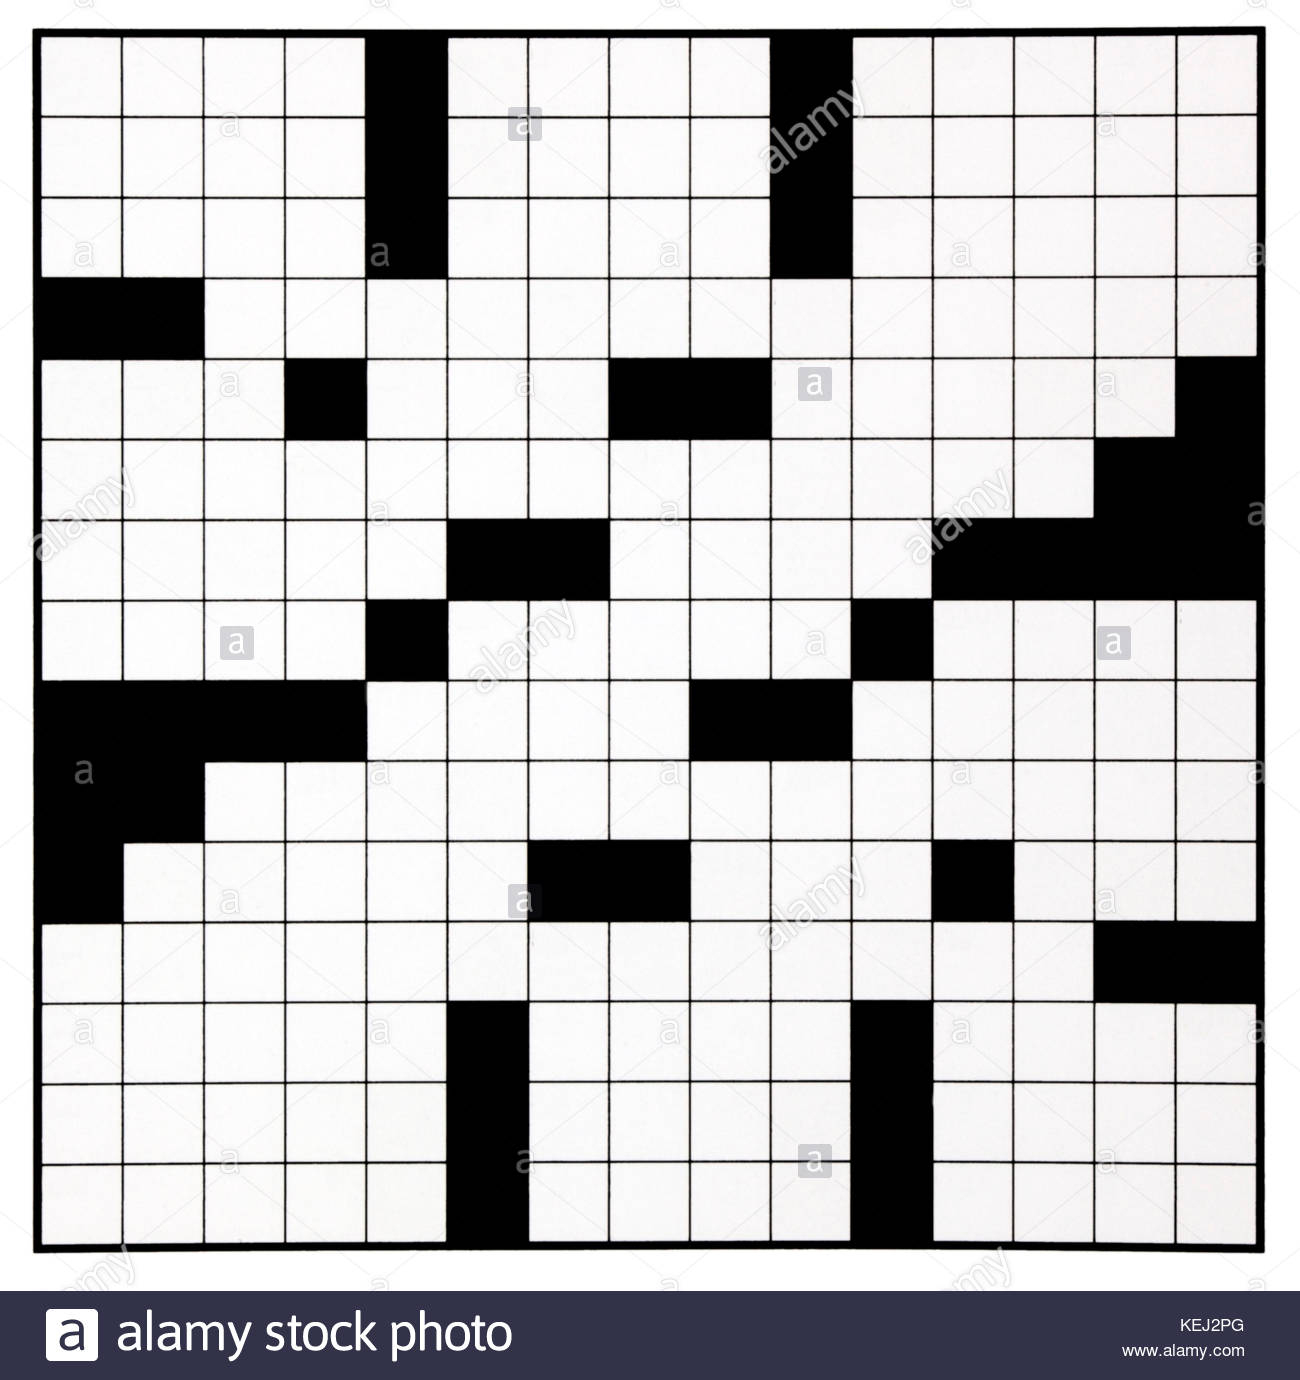 Blank Crossword Grid - Yapis.sticken.co - Printable Blank Crossword Puzzle Grid